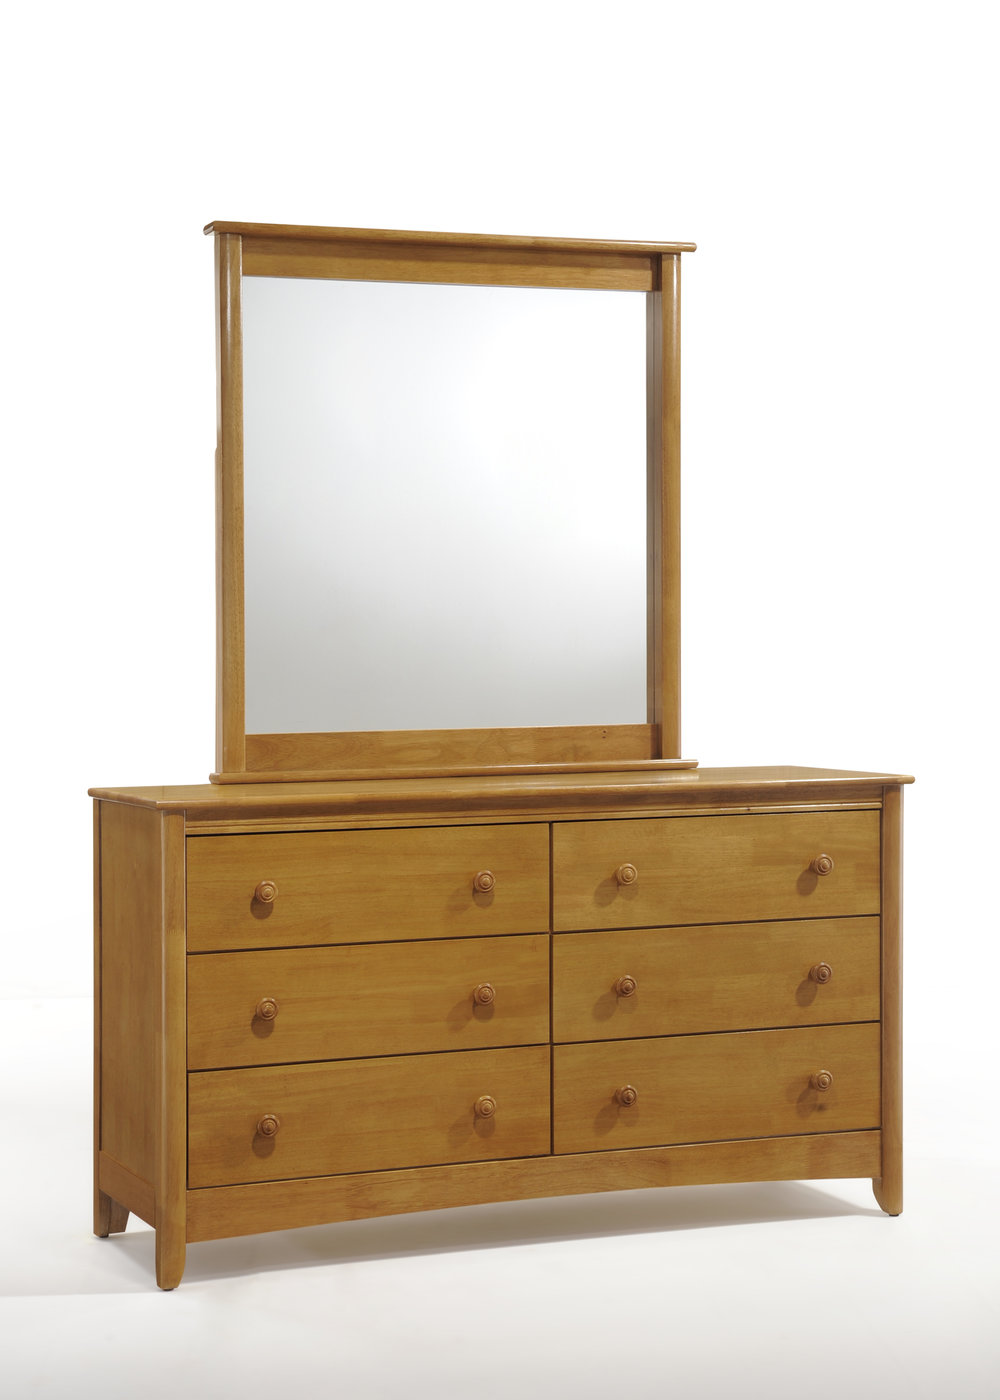 Secrets 6 Drawer Dresser & Mirror Medium Oak.jpg